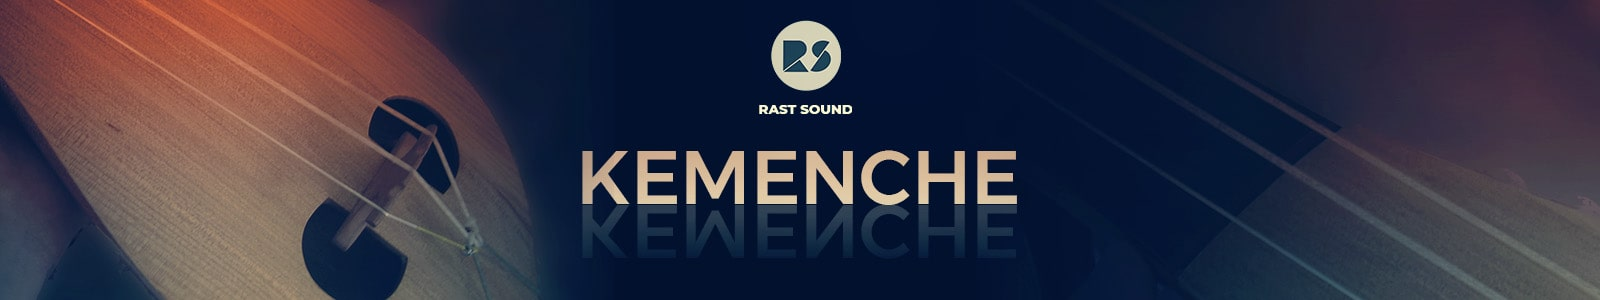 KEMENCHE by rast sound